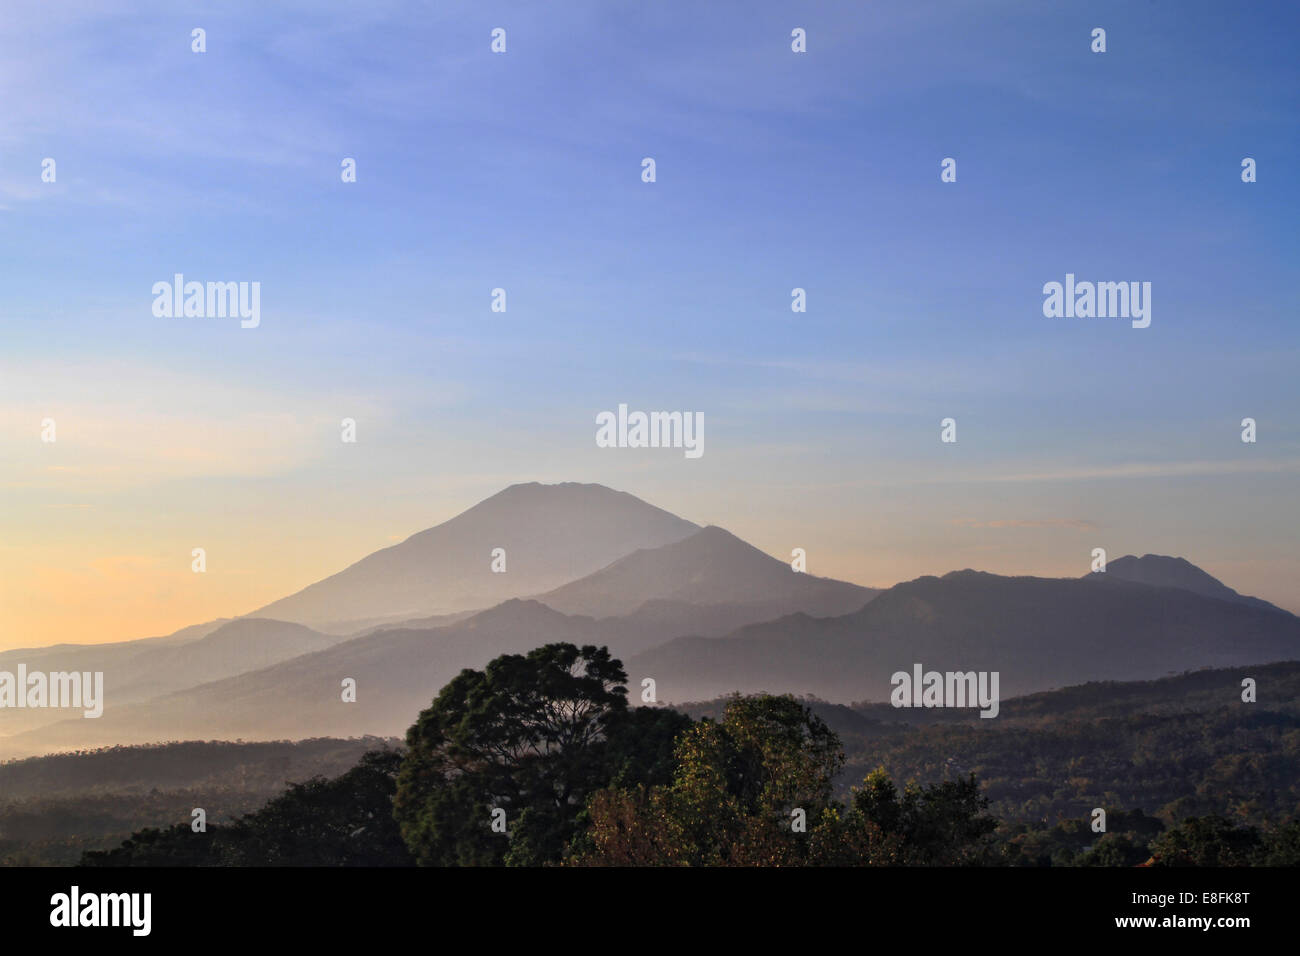 Indonesia, Central Java, Bandungan, Landscape of mountains - Stock Image